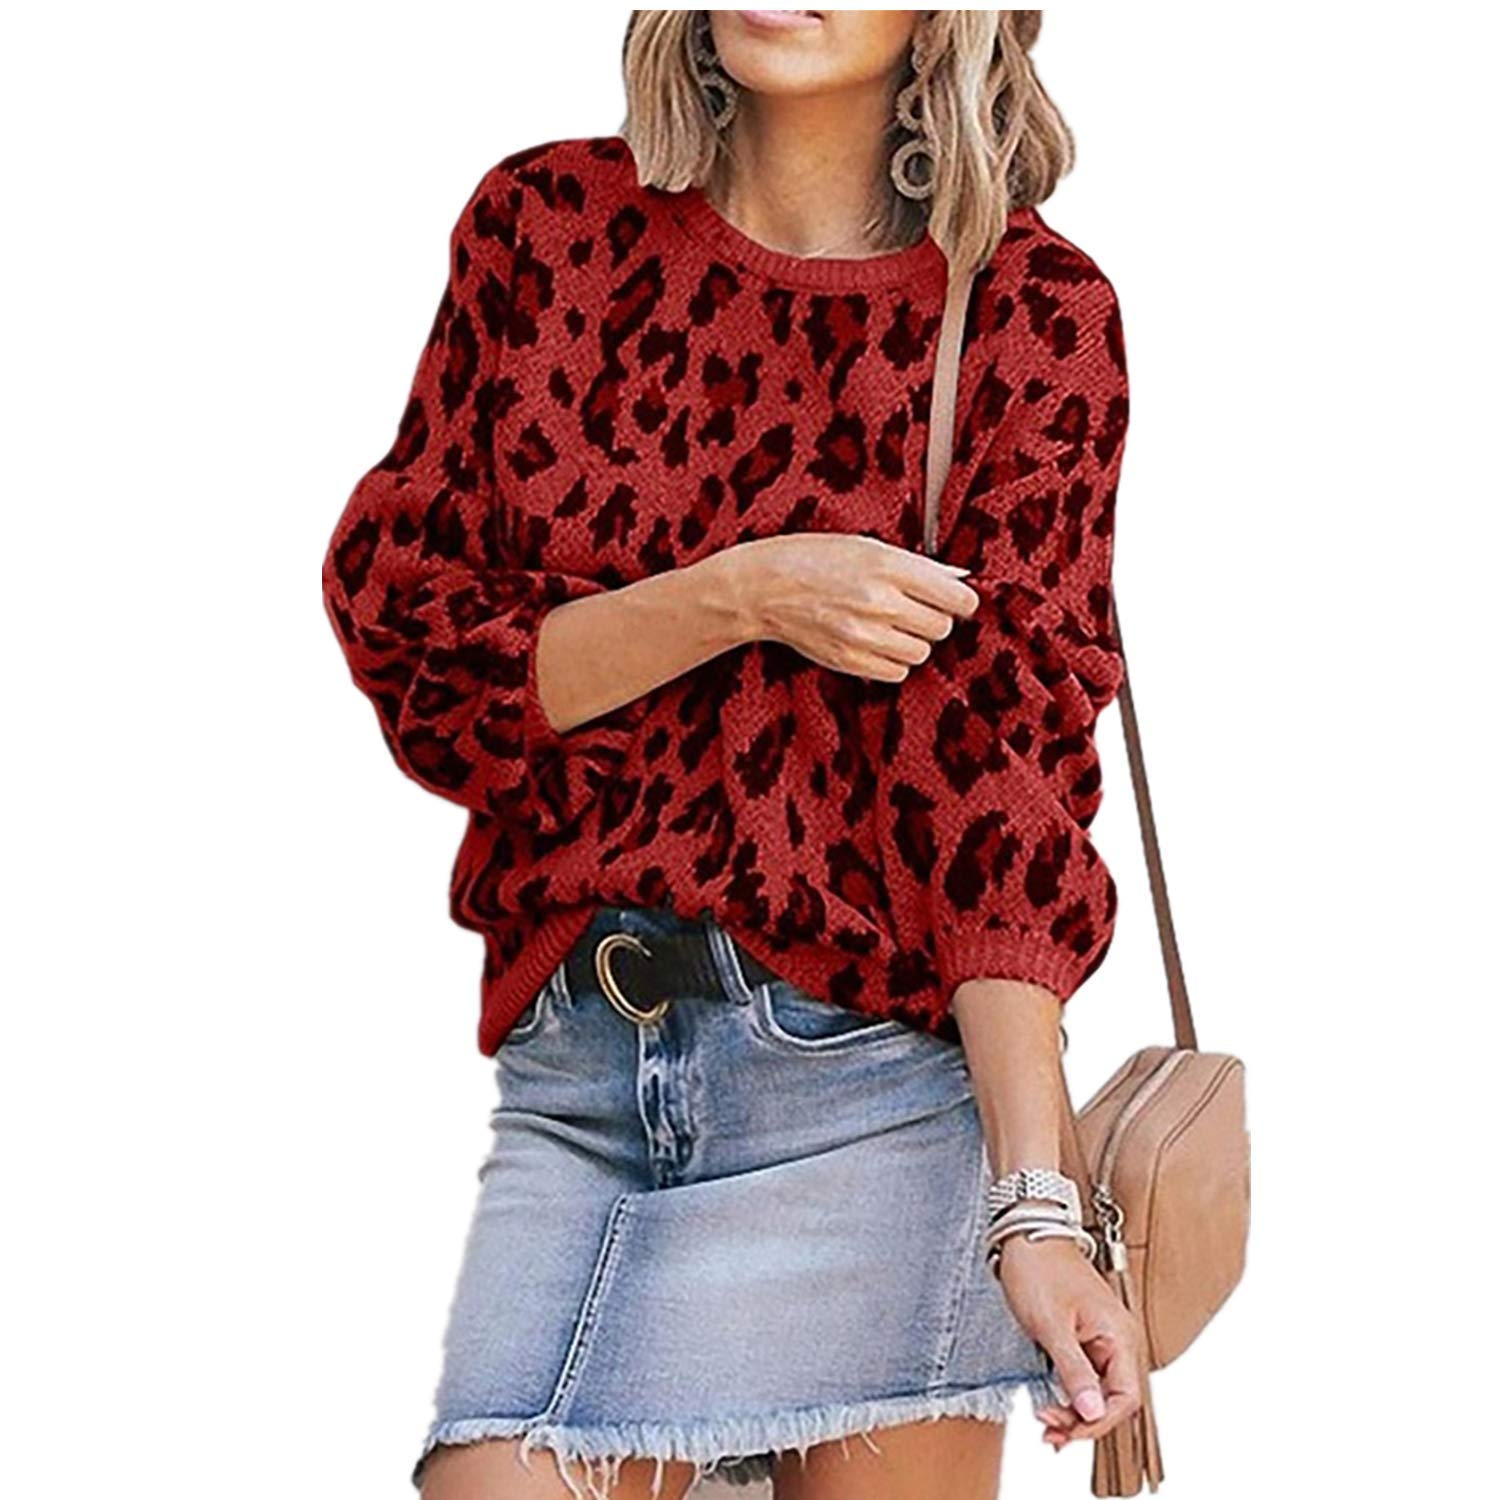 Womens Casual Leopard Printed Sweaters - Long Sleeve Sweatshirts Jumper Pullover Tops Knits Loose Blouse Red by HiSunlyan